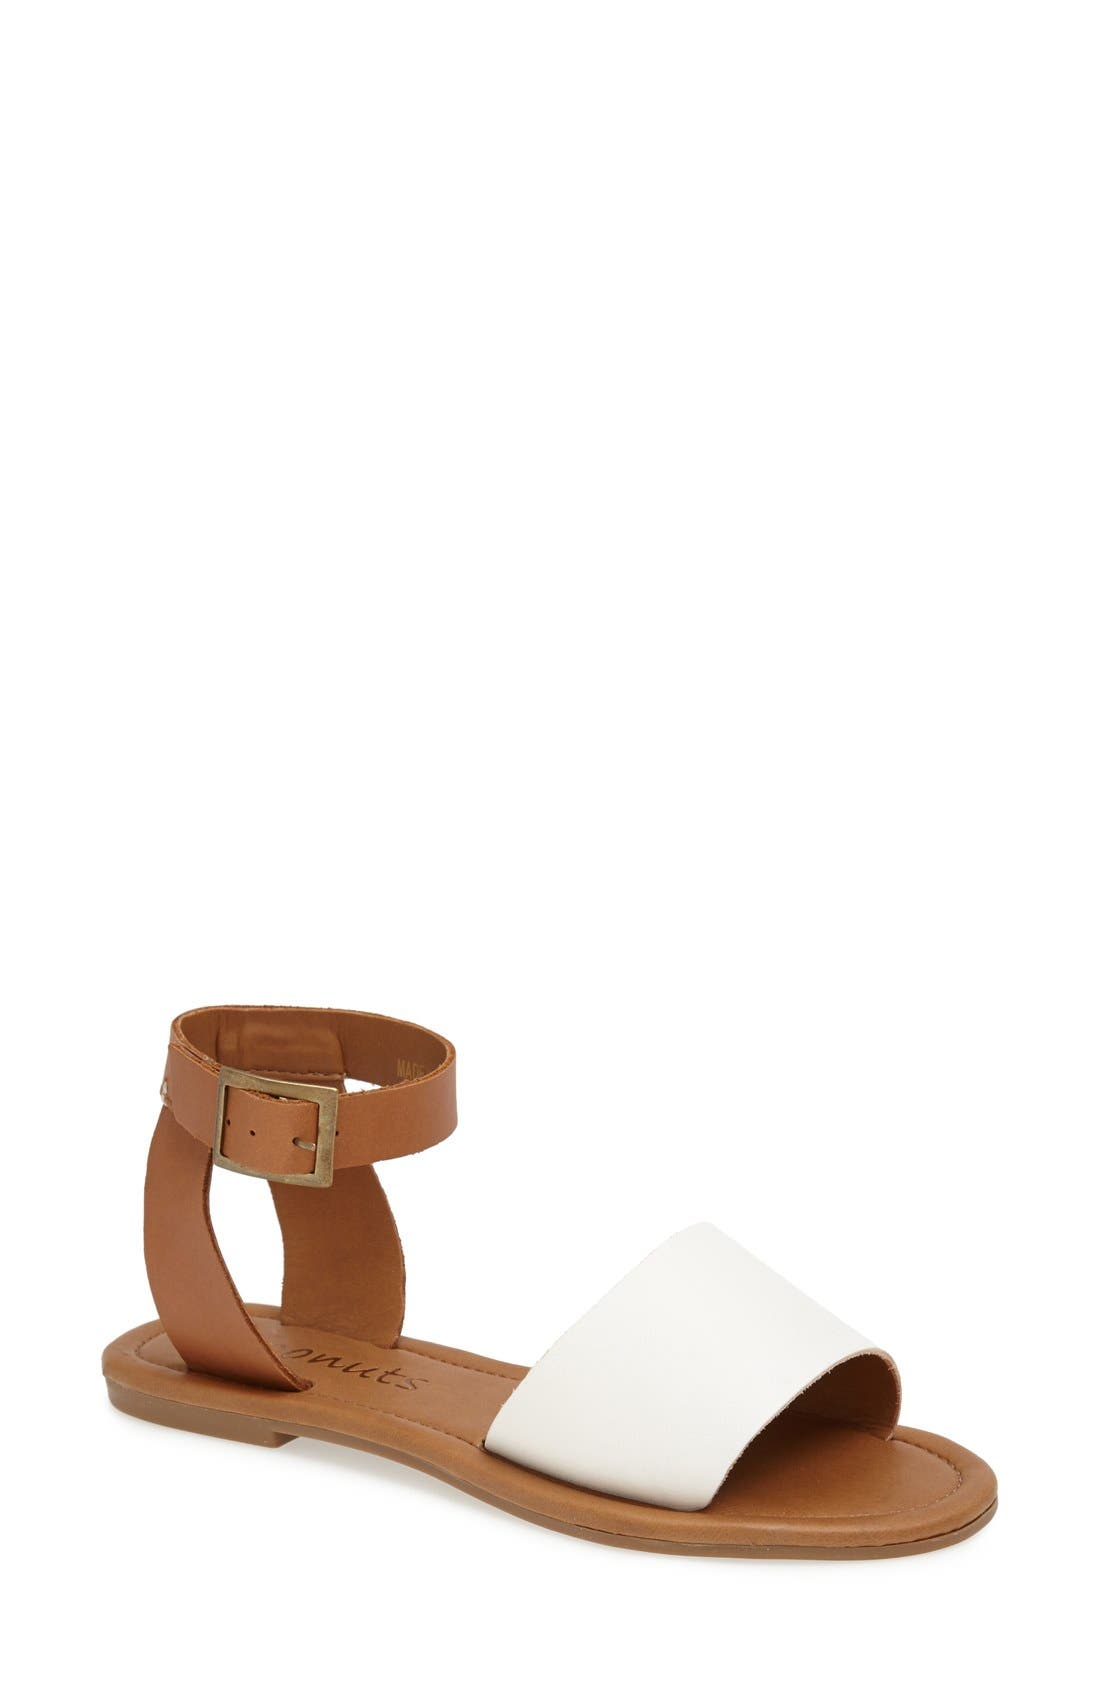 Alternate Image 1 Selected - Coconuts by Matisse 'All About' Leather Ankle Strap Sandal